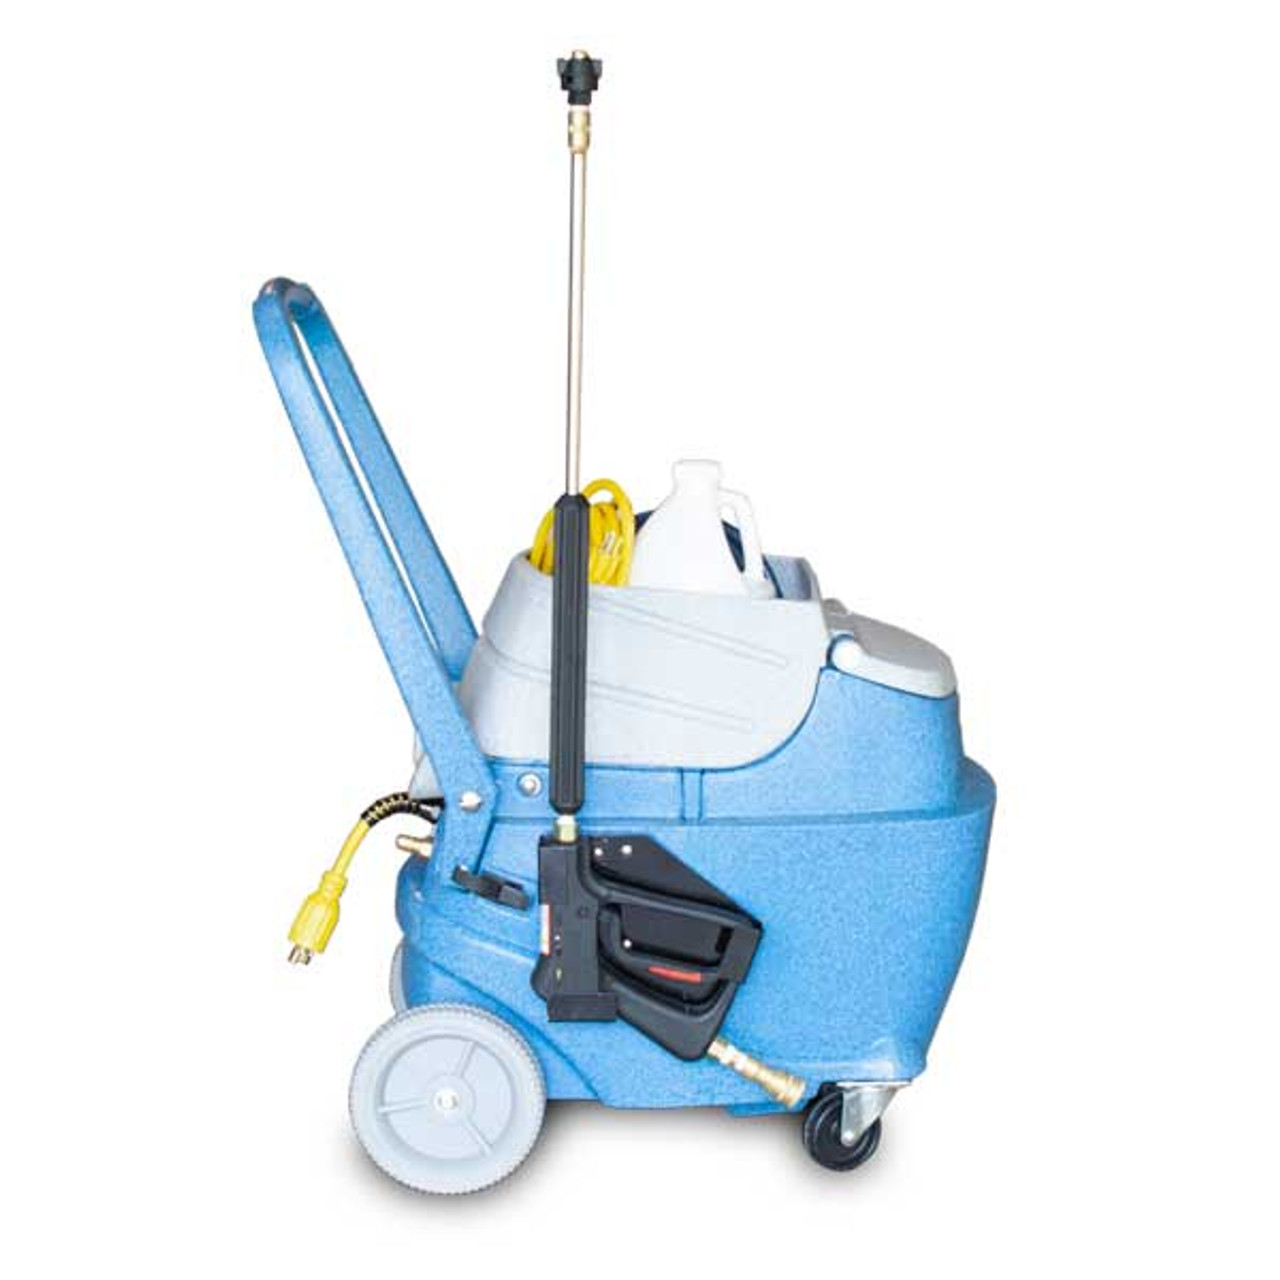 Top mounted tool caddy for easy transport of chemical, solution hose, and power cord.